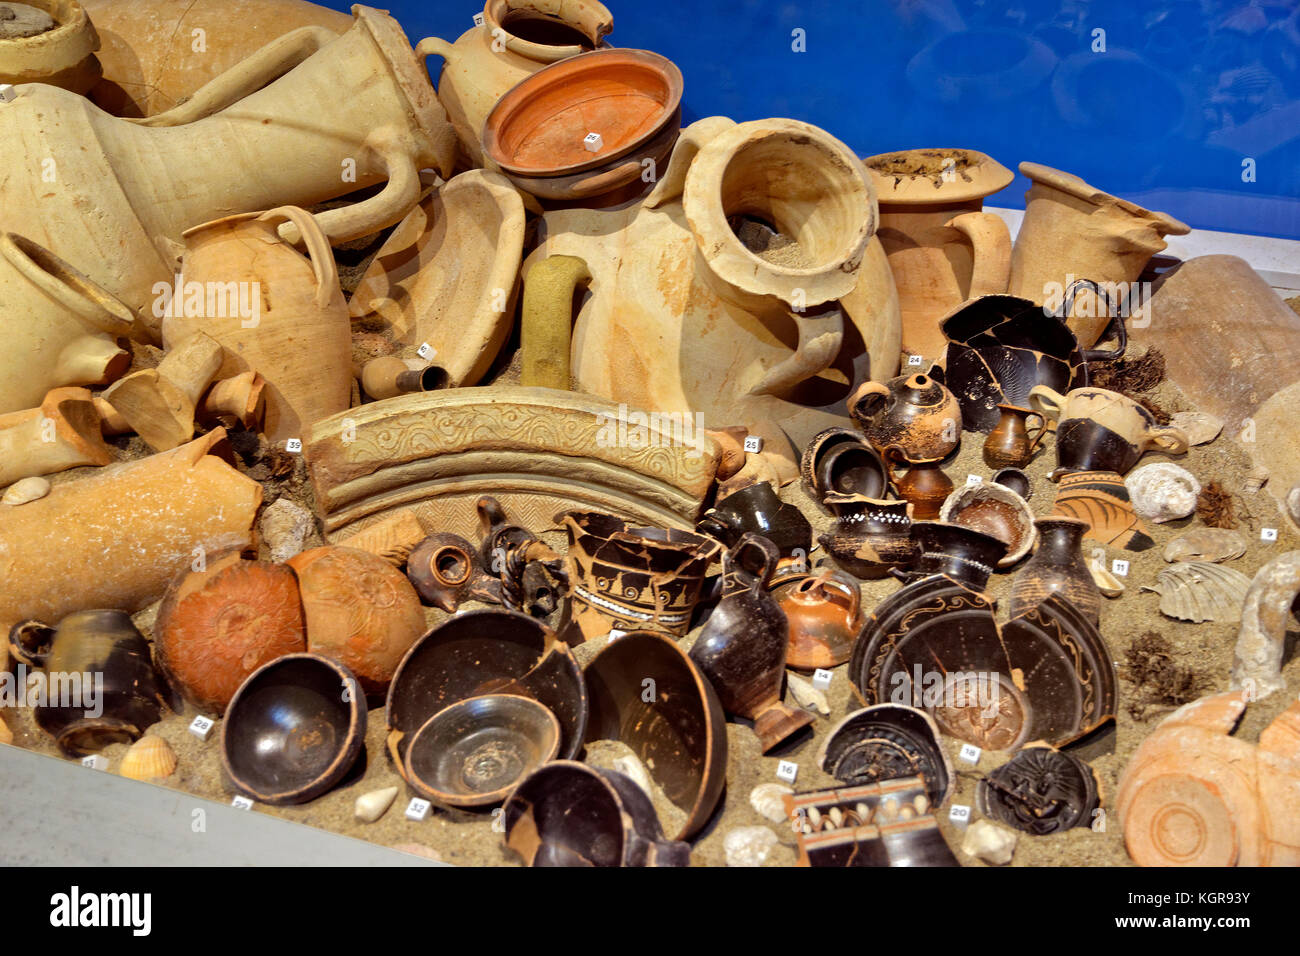 Recovered ceramic artefacts displayed in the Pompeii museum at Pompei Scavi near Naples, Campania, Italy. - Stock Image